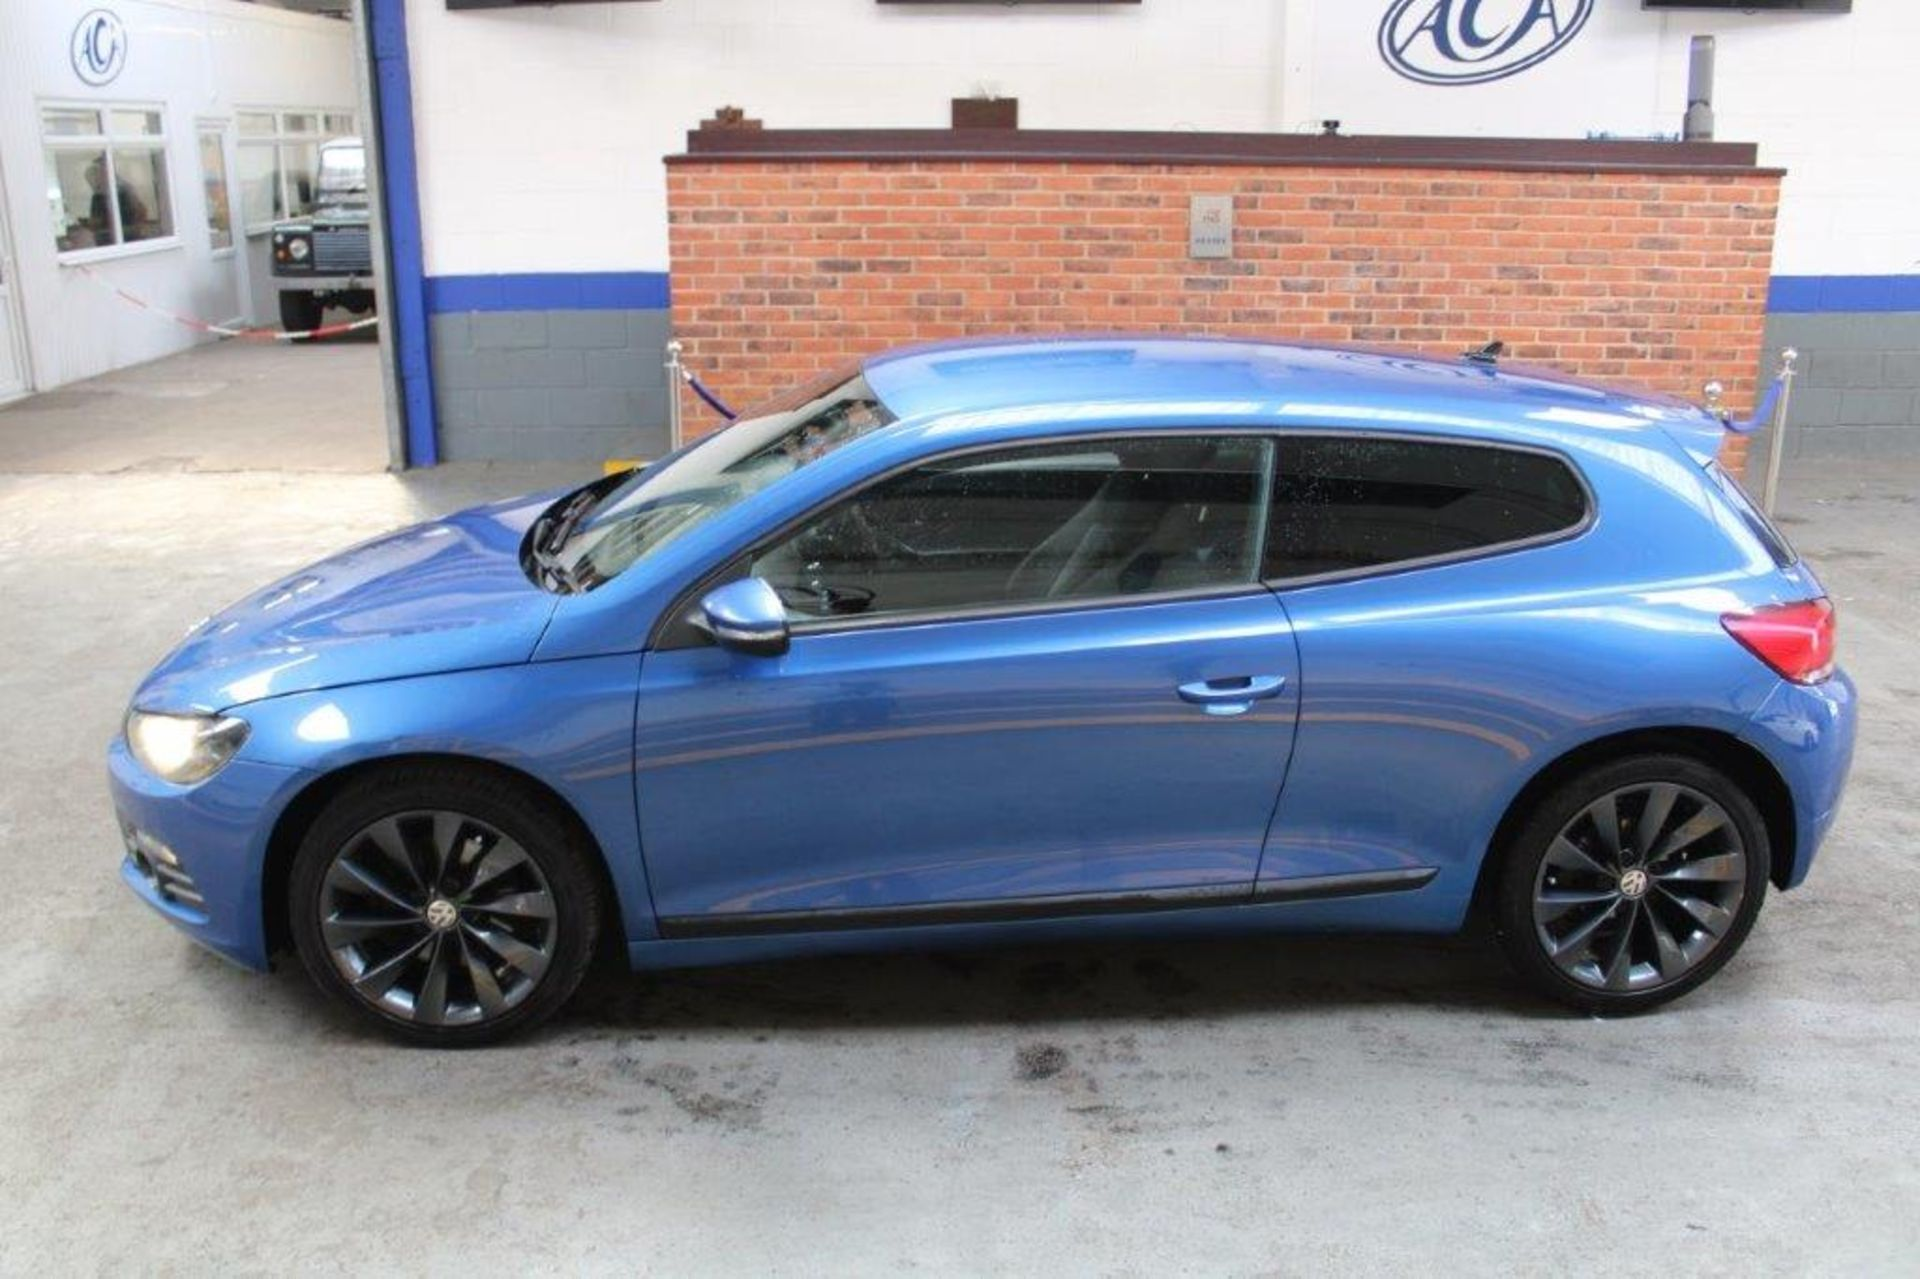 58 08 VW Scirocco GT - Image 2 of 29